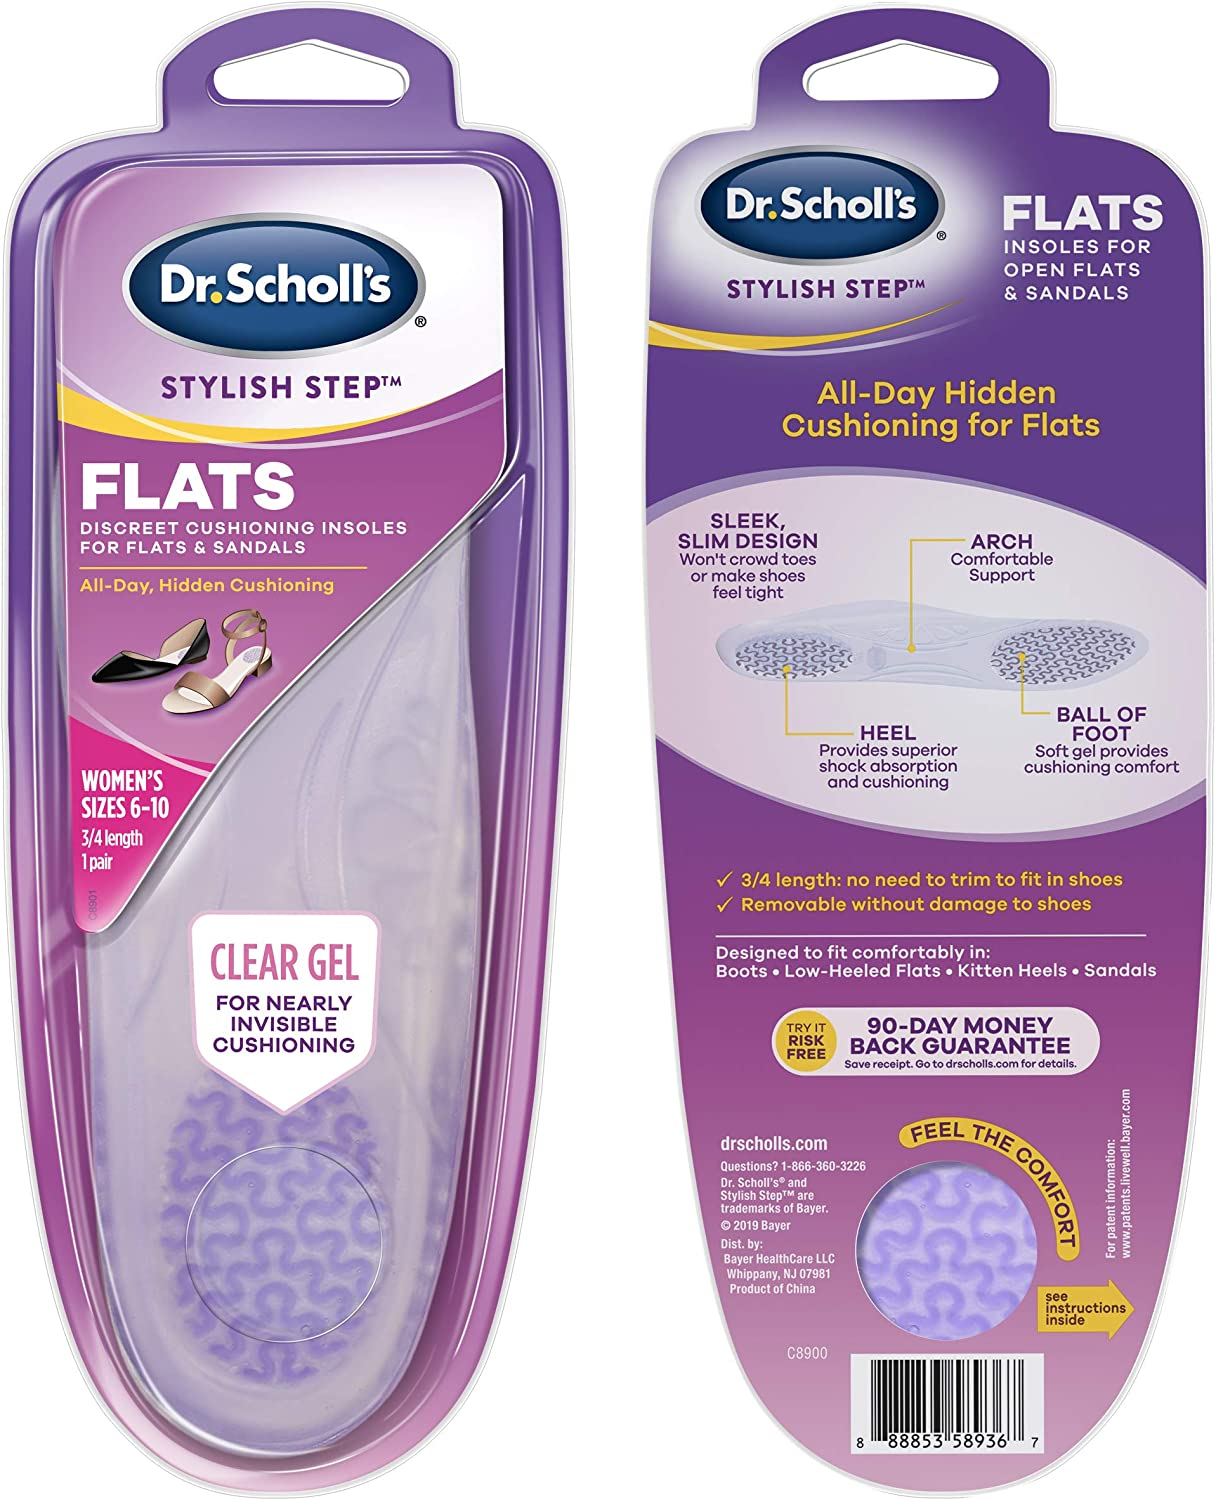 Scholls CLEAR CUSHIONING Insoles for Flats Dr //// Clear Gel Absorbs Shock for Discreet Cushioning and All-Day Comfort Womens 6-10